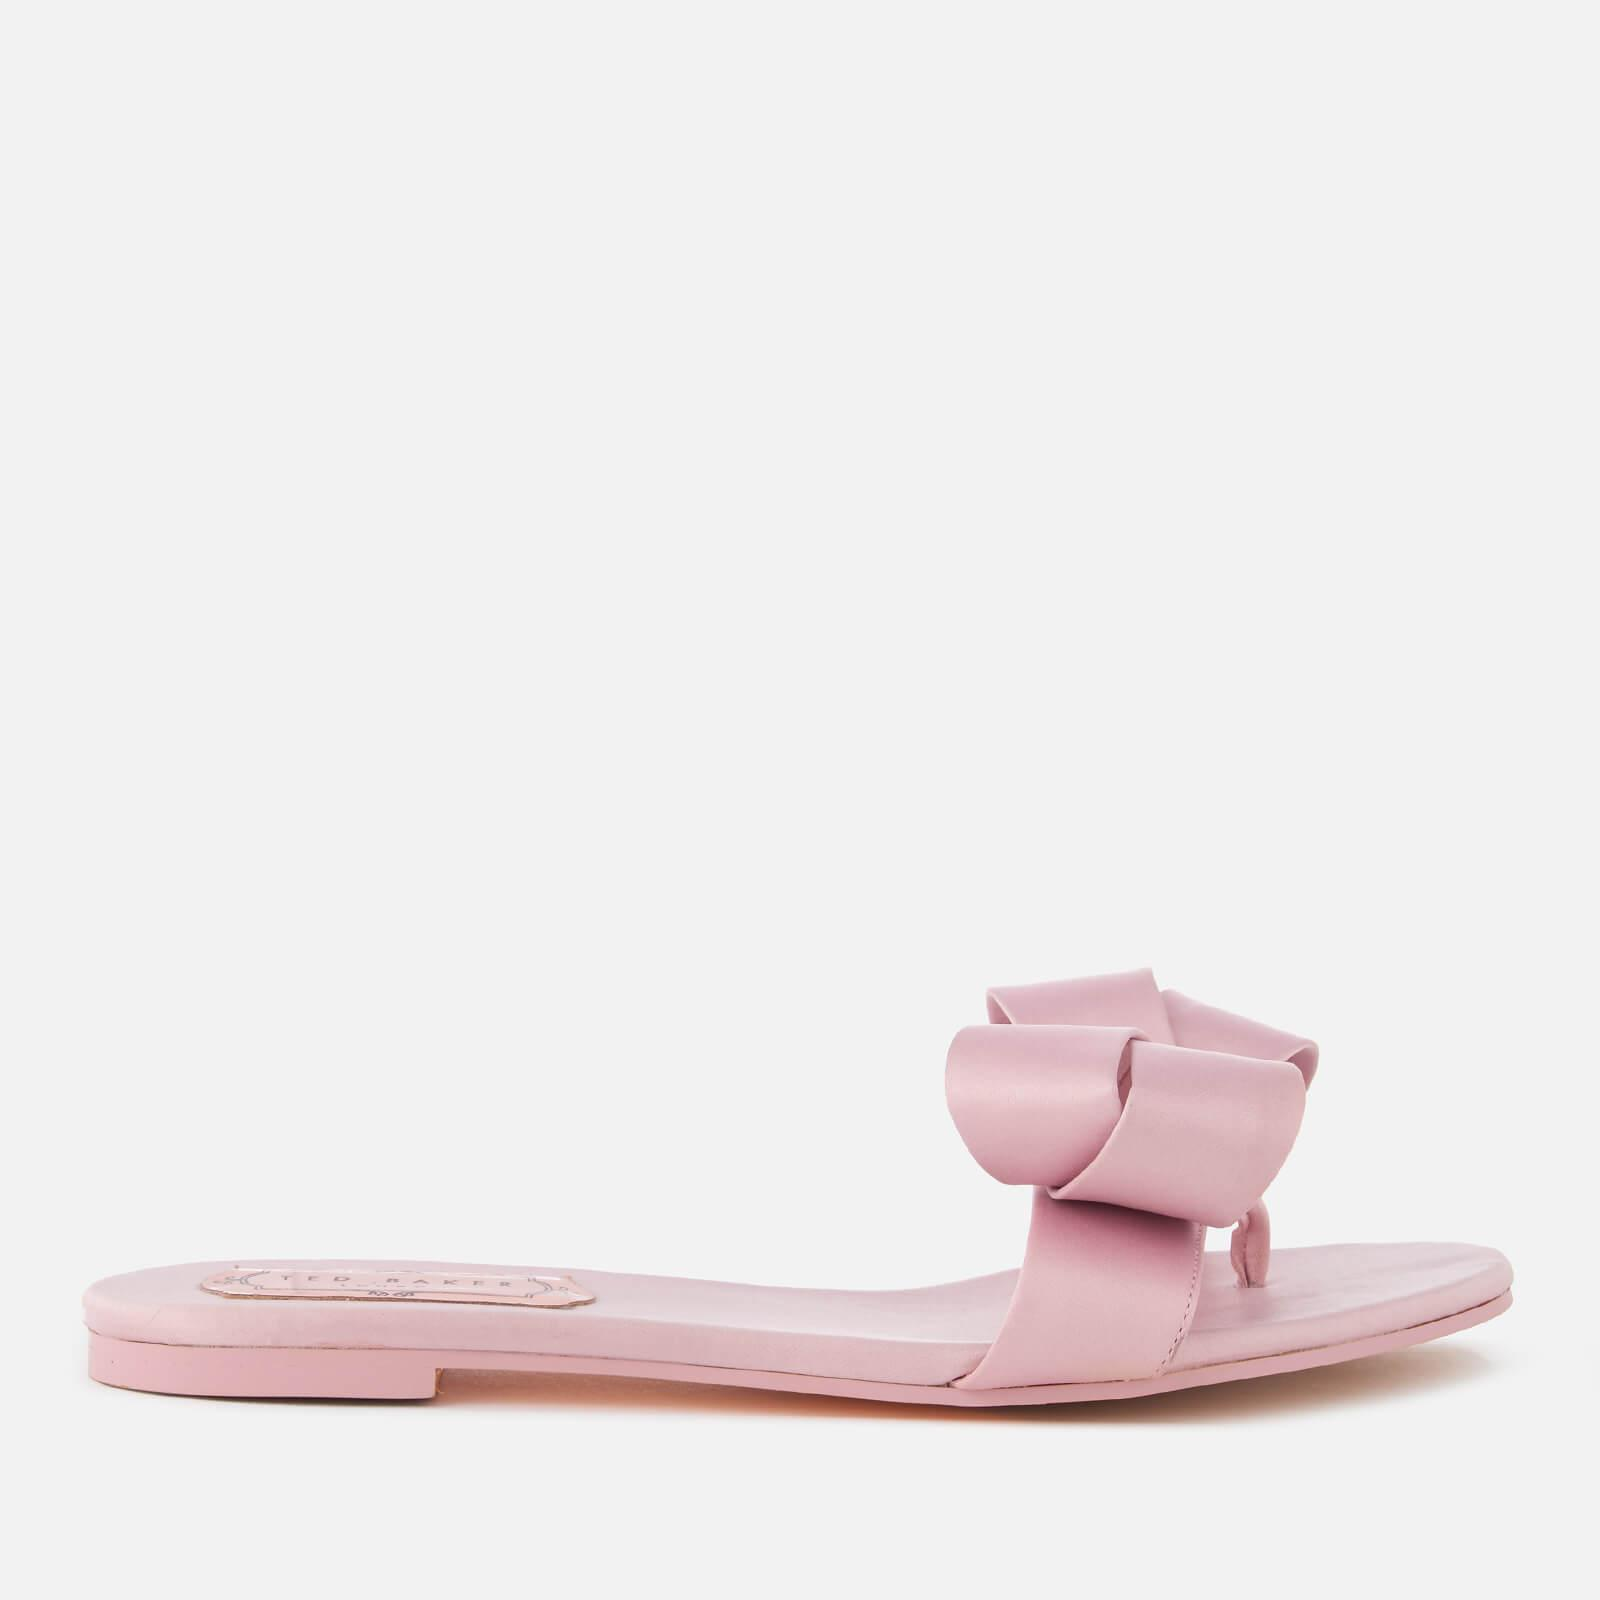 0920d5253 Lyst - Ted Baker Beauita Satin Bow Sandals in Pink